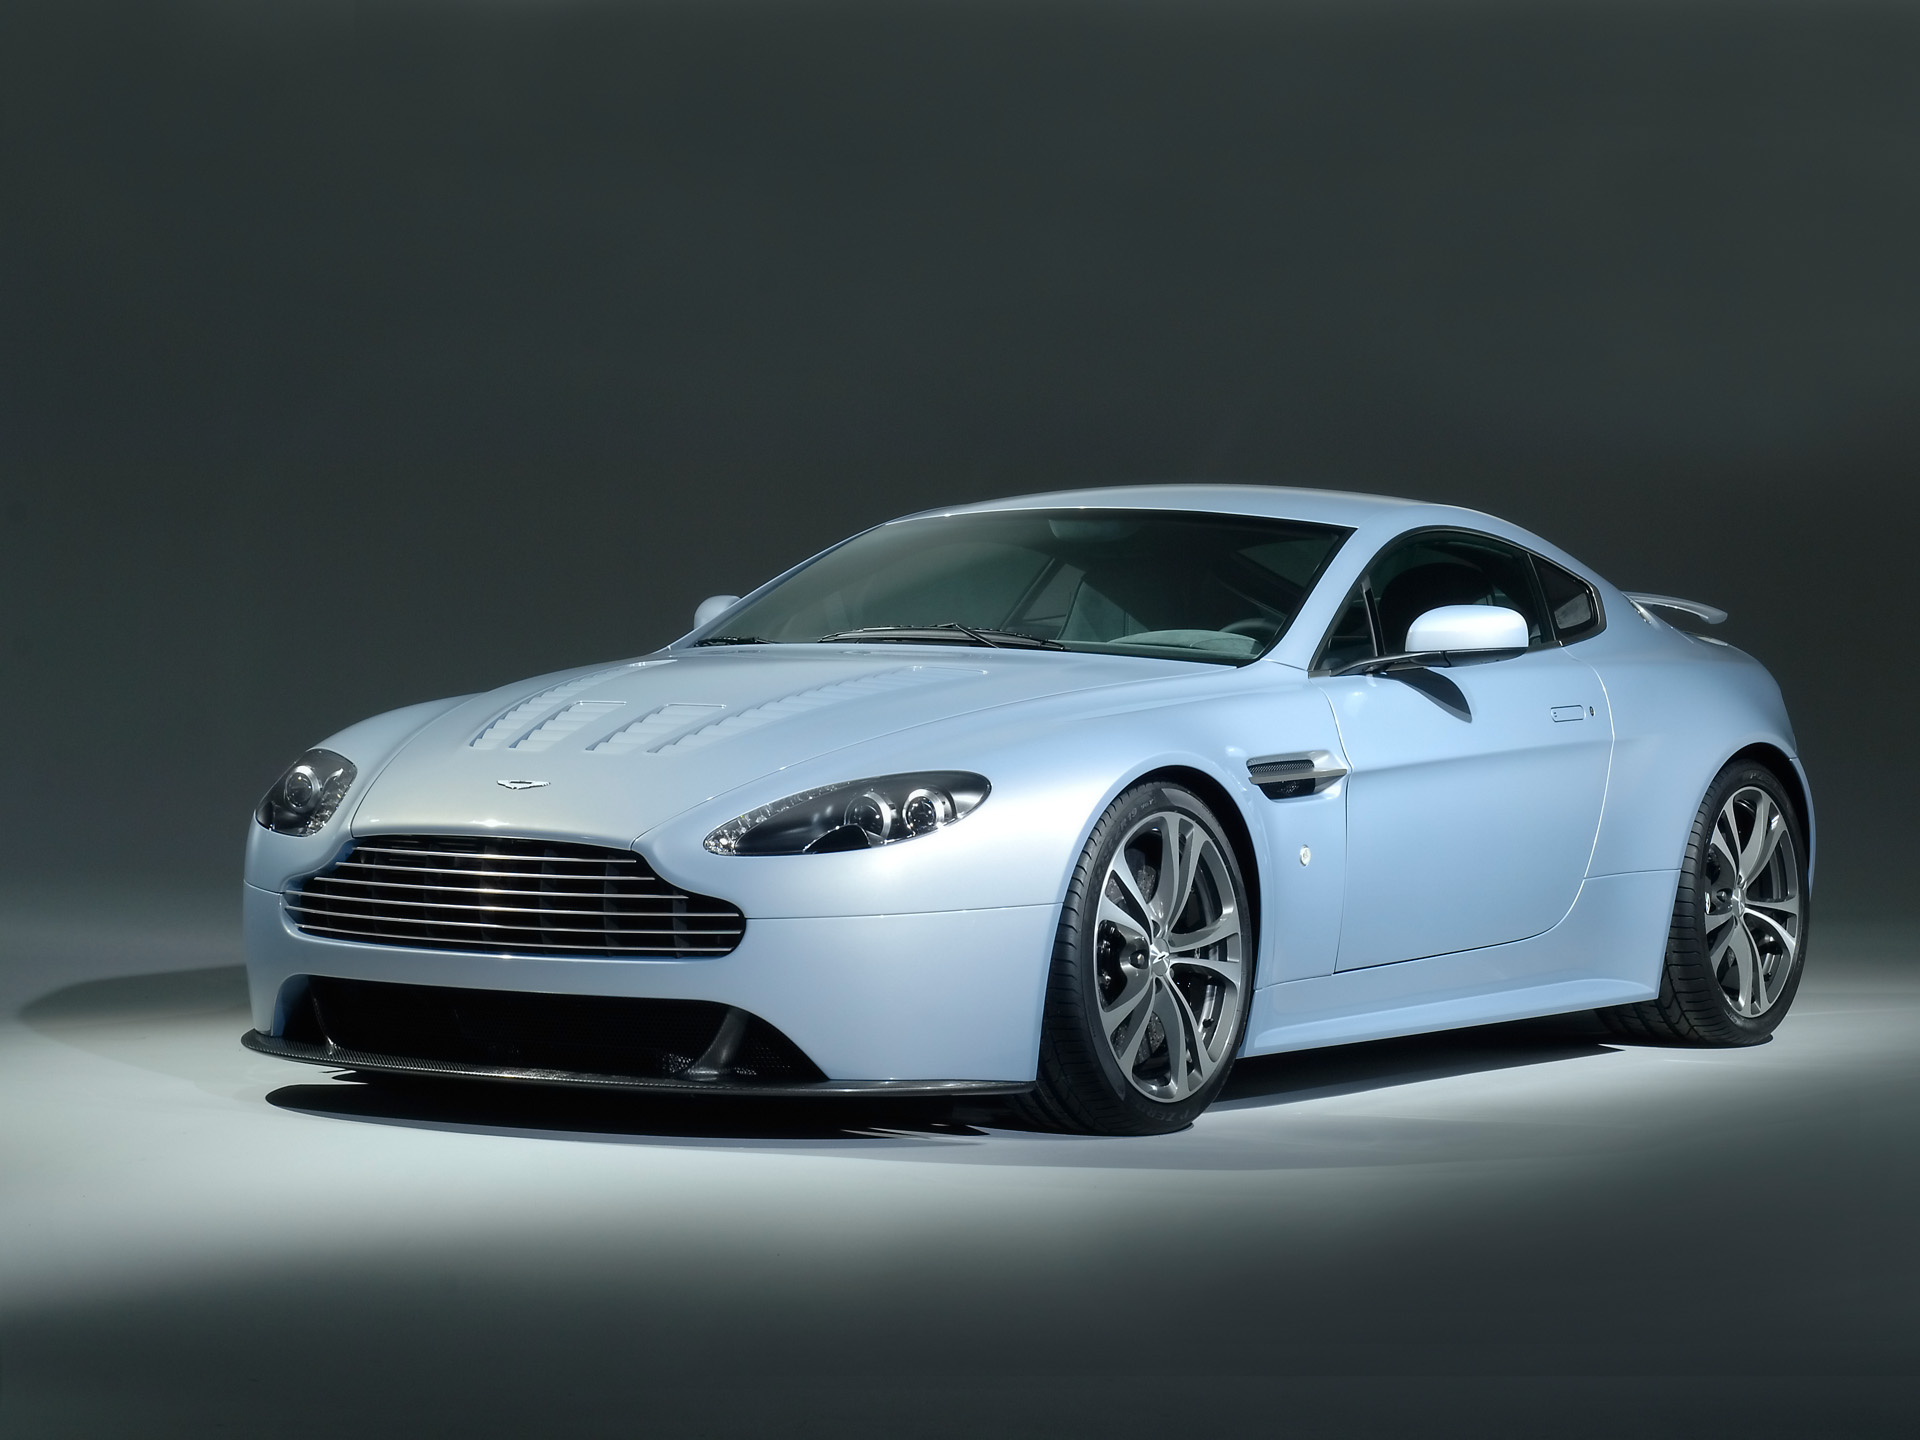 2007 aston martin v12 vantage rs pictures history value. Black Bedroom Furniture Sets. Home Design Ideas